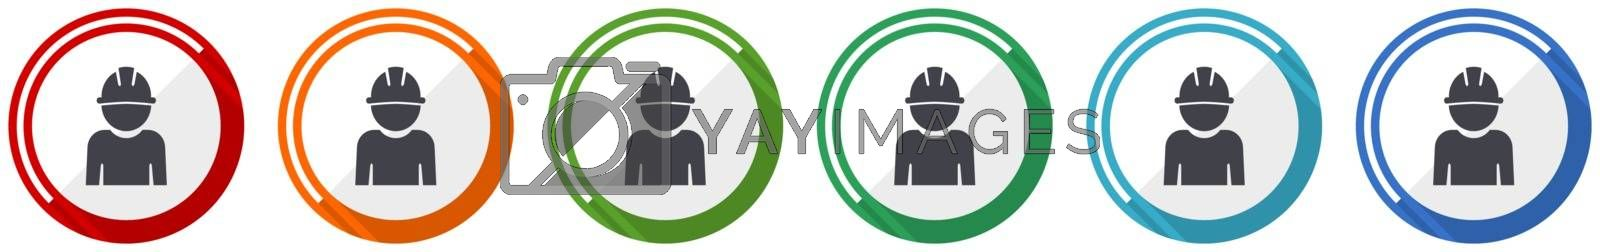 Engineer icon set, worker, manager, employe flat design vector illustration in 6 colors options for webdesign and mobile applications